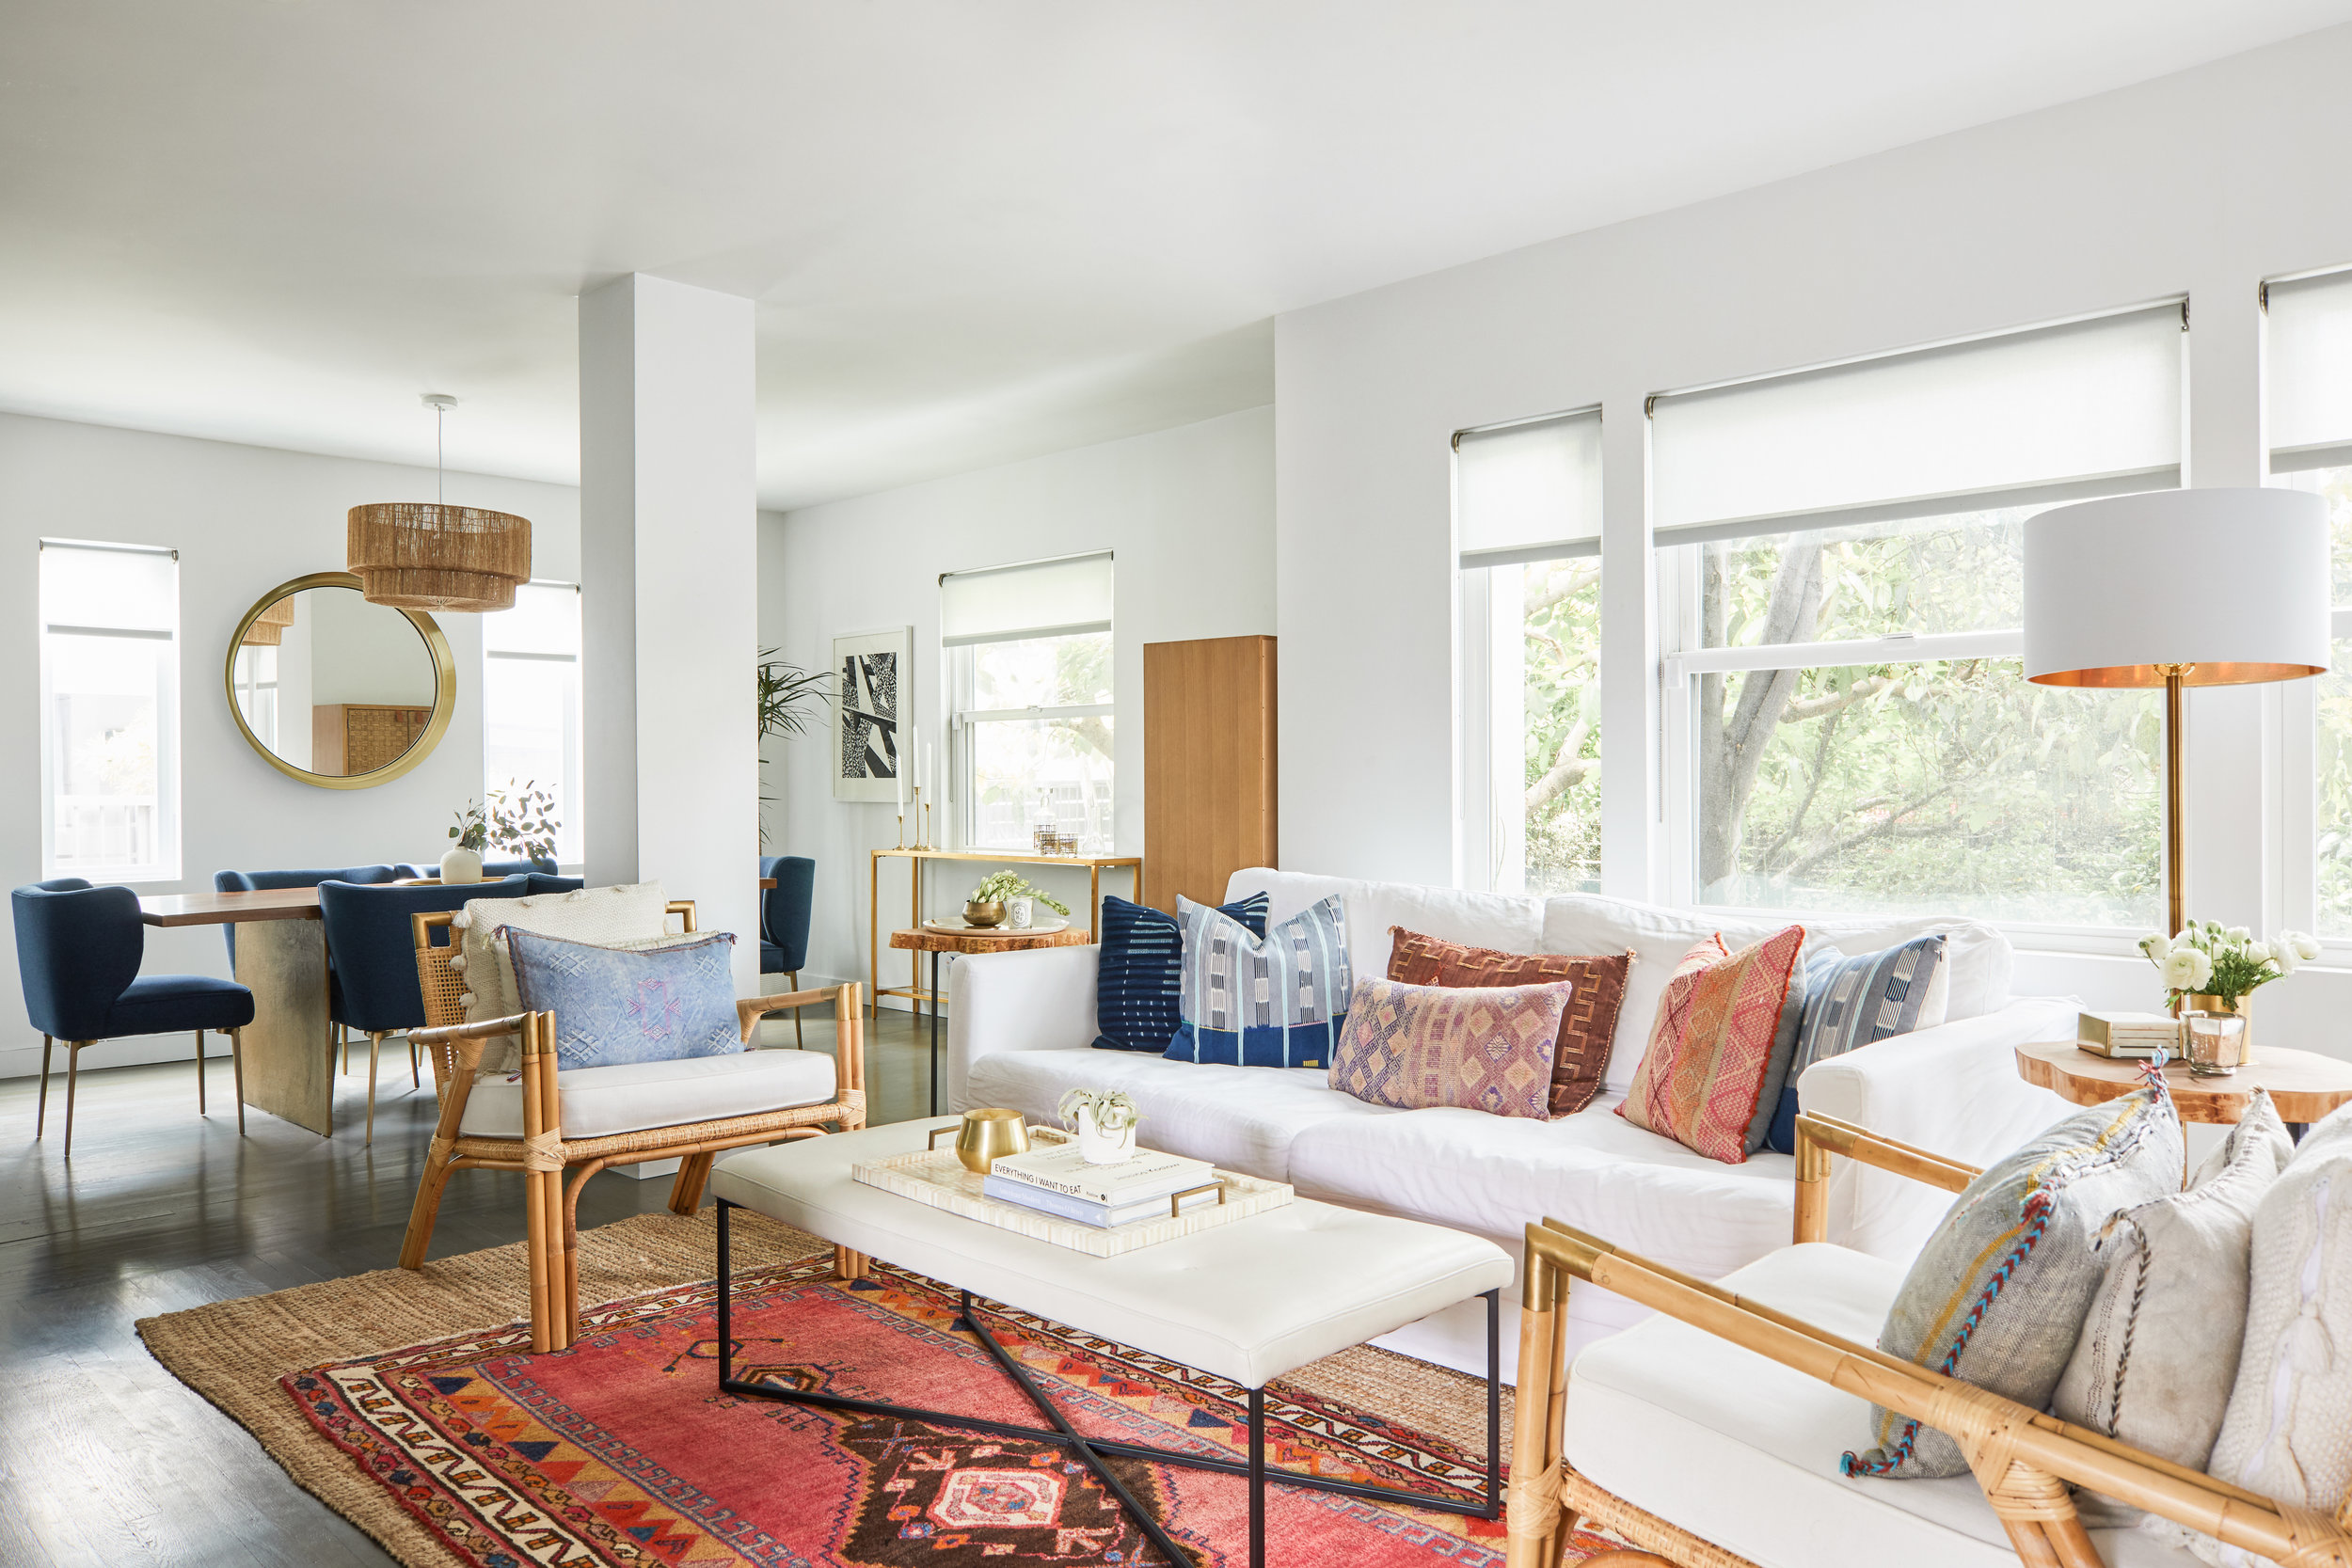 Hunker Home - Middle Eastern maximalism meets California minimalism in this bohemian Venice home.  Online design destination Hunker takes a tour with Kerry Vasquez of our Beachy Bohemian project.